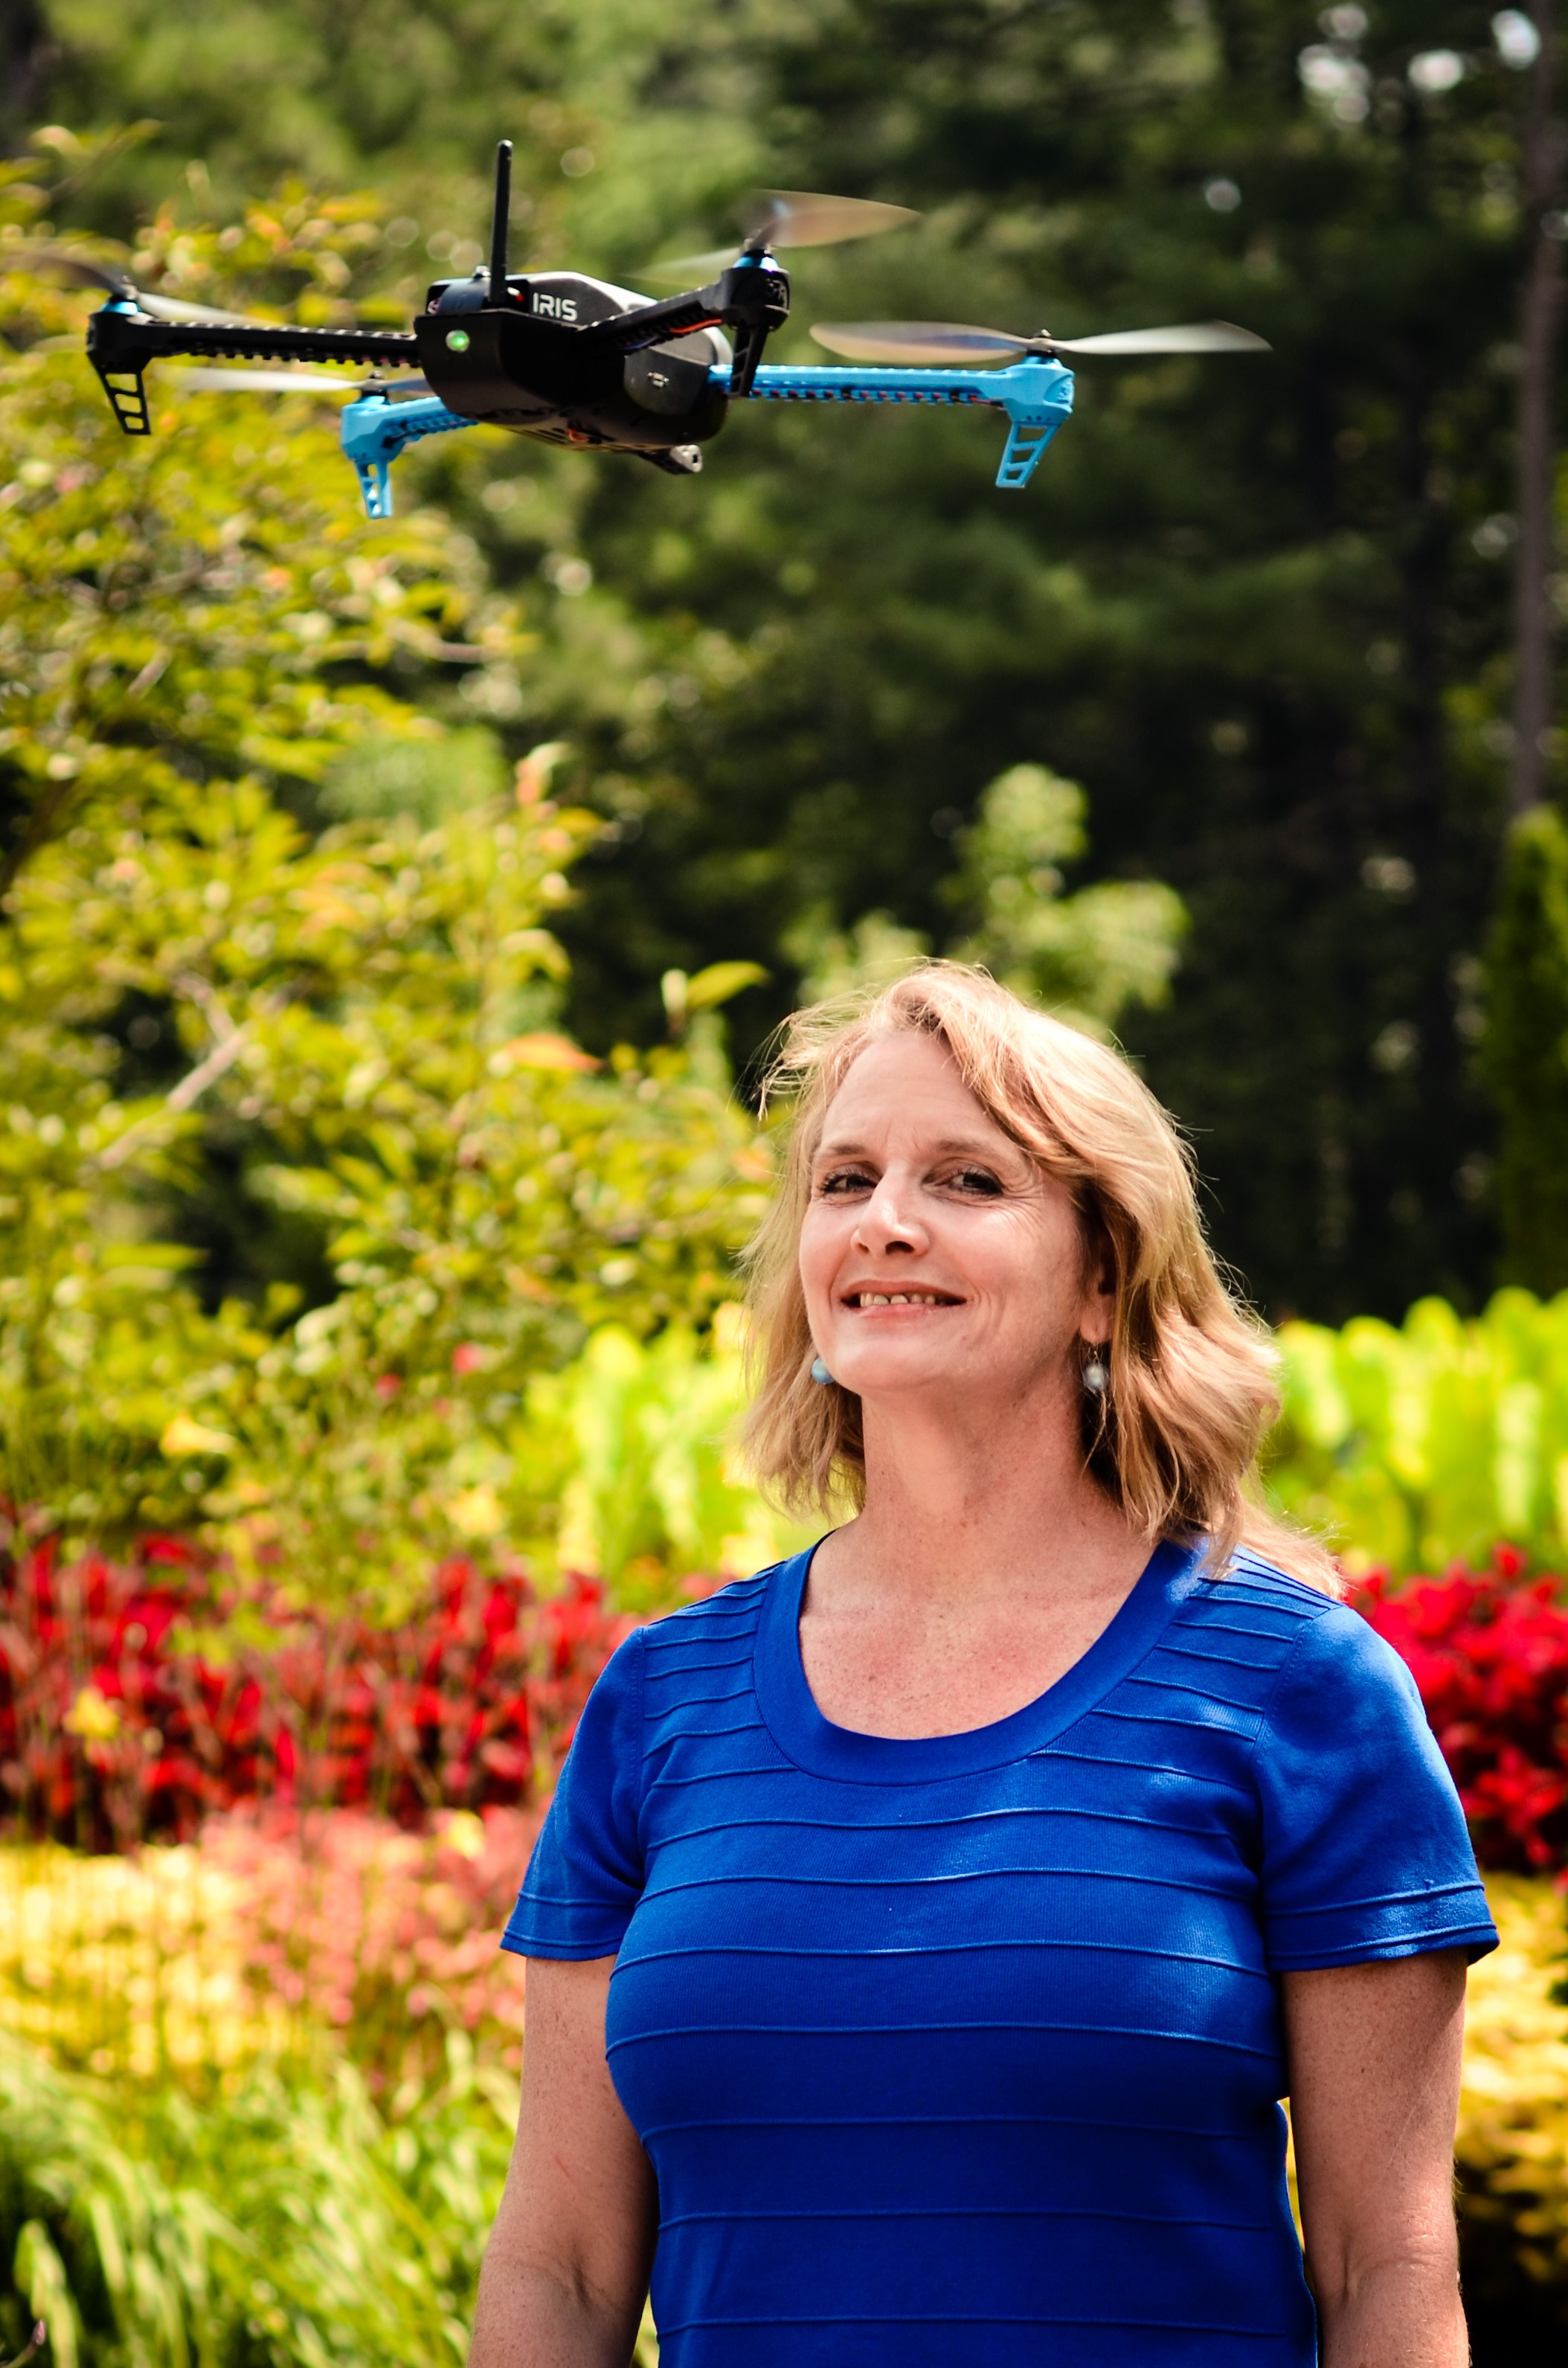 Mary 'Missy' Cummings standing with a hovering drone in the Sarah P. Duke Gardens at Duke University, where she will work to generate a set of inexpensive, unobtrusive best practices to deter unwanted drone usage.